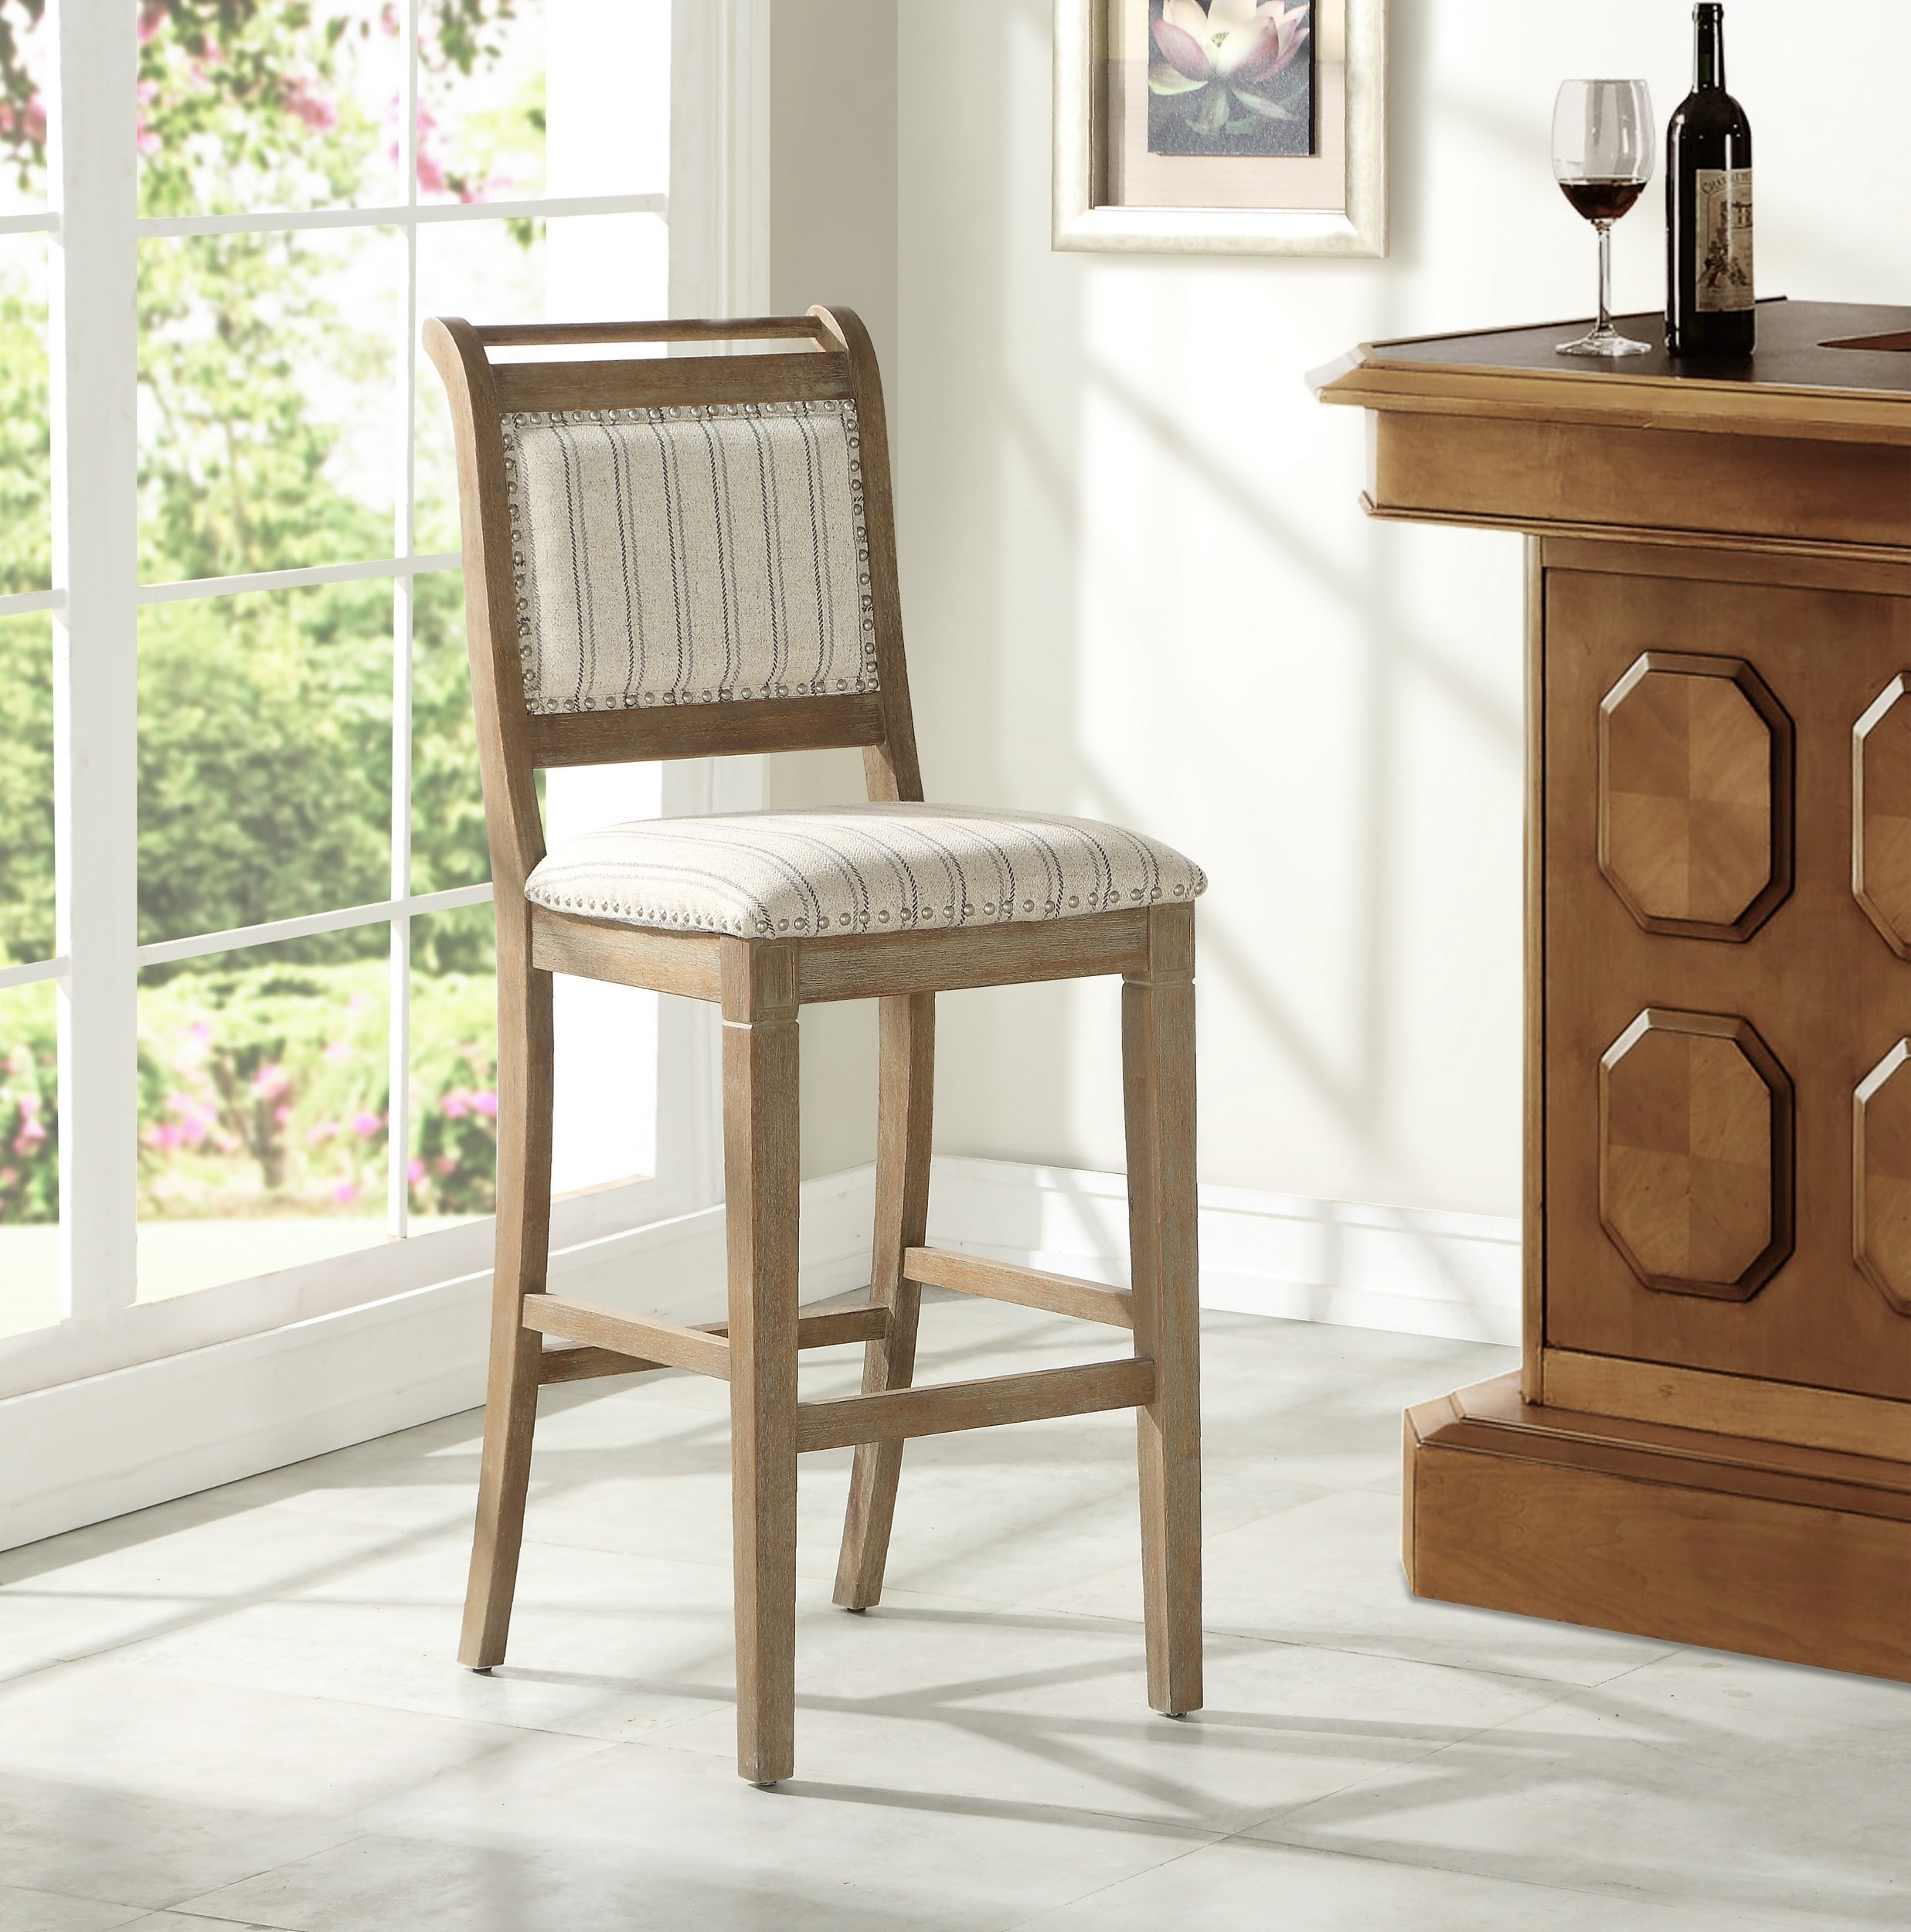 Linon Home Decor Products Inc Emmy Gray Bar Stool Reviews